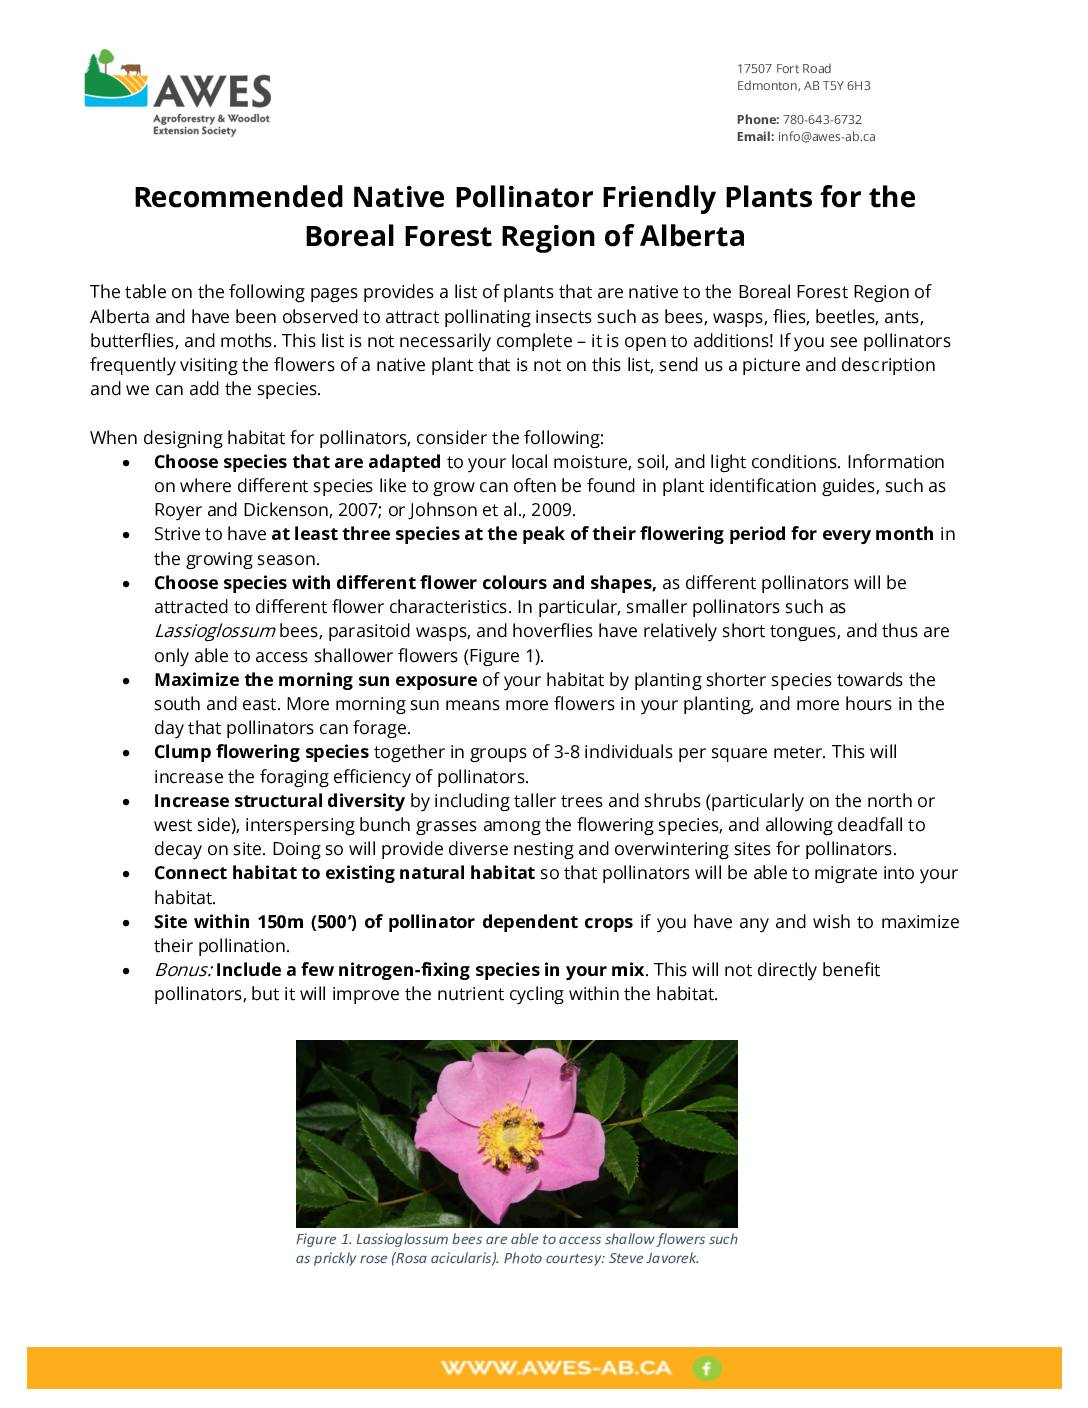 Recommended Native Pollinator Friendly Plants for the Boreal Forest Region of Alberta